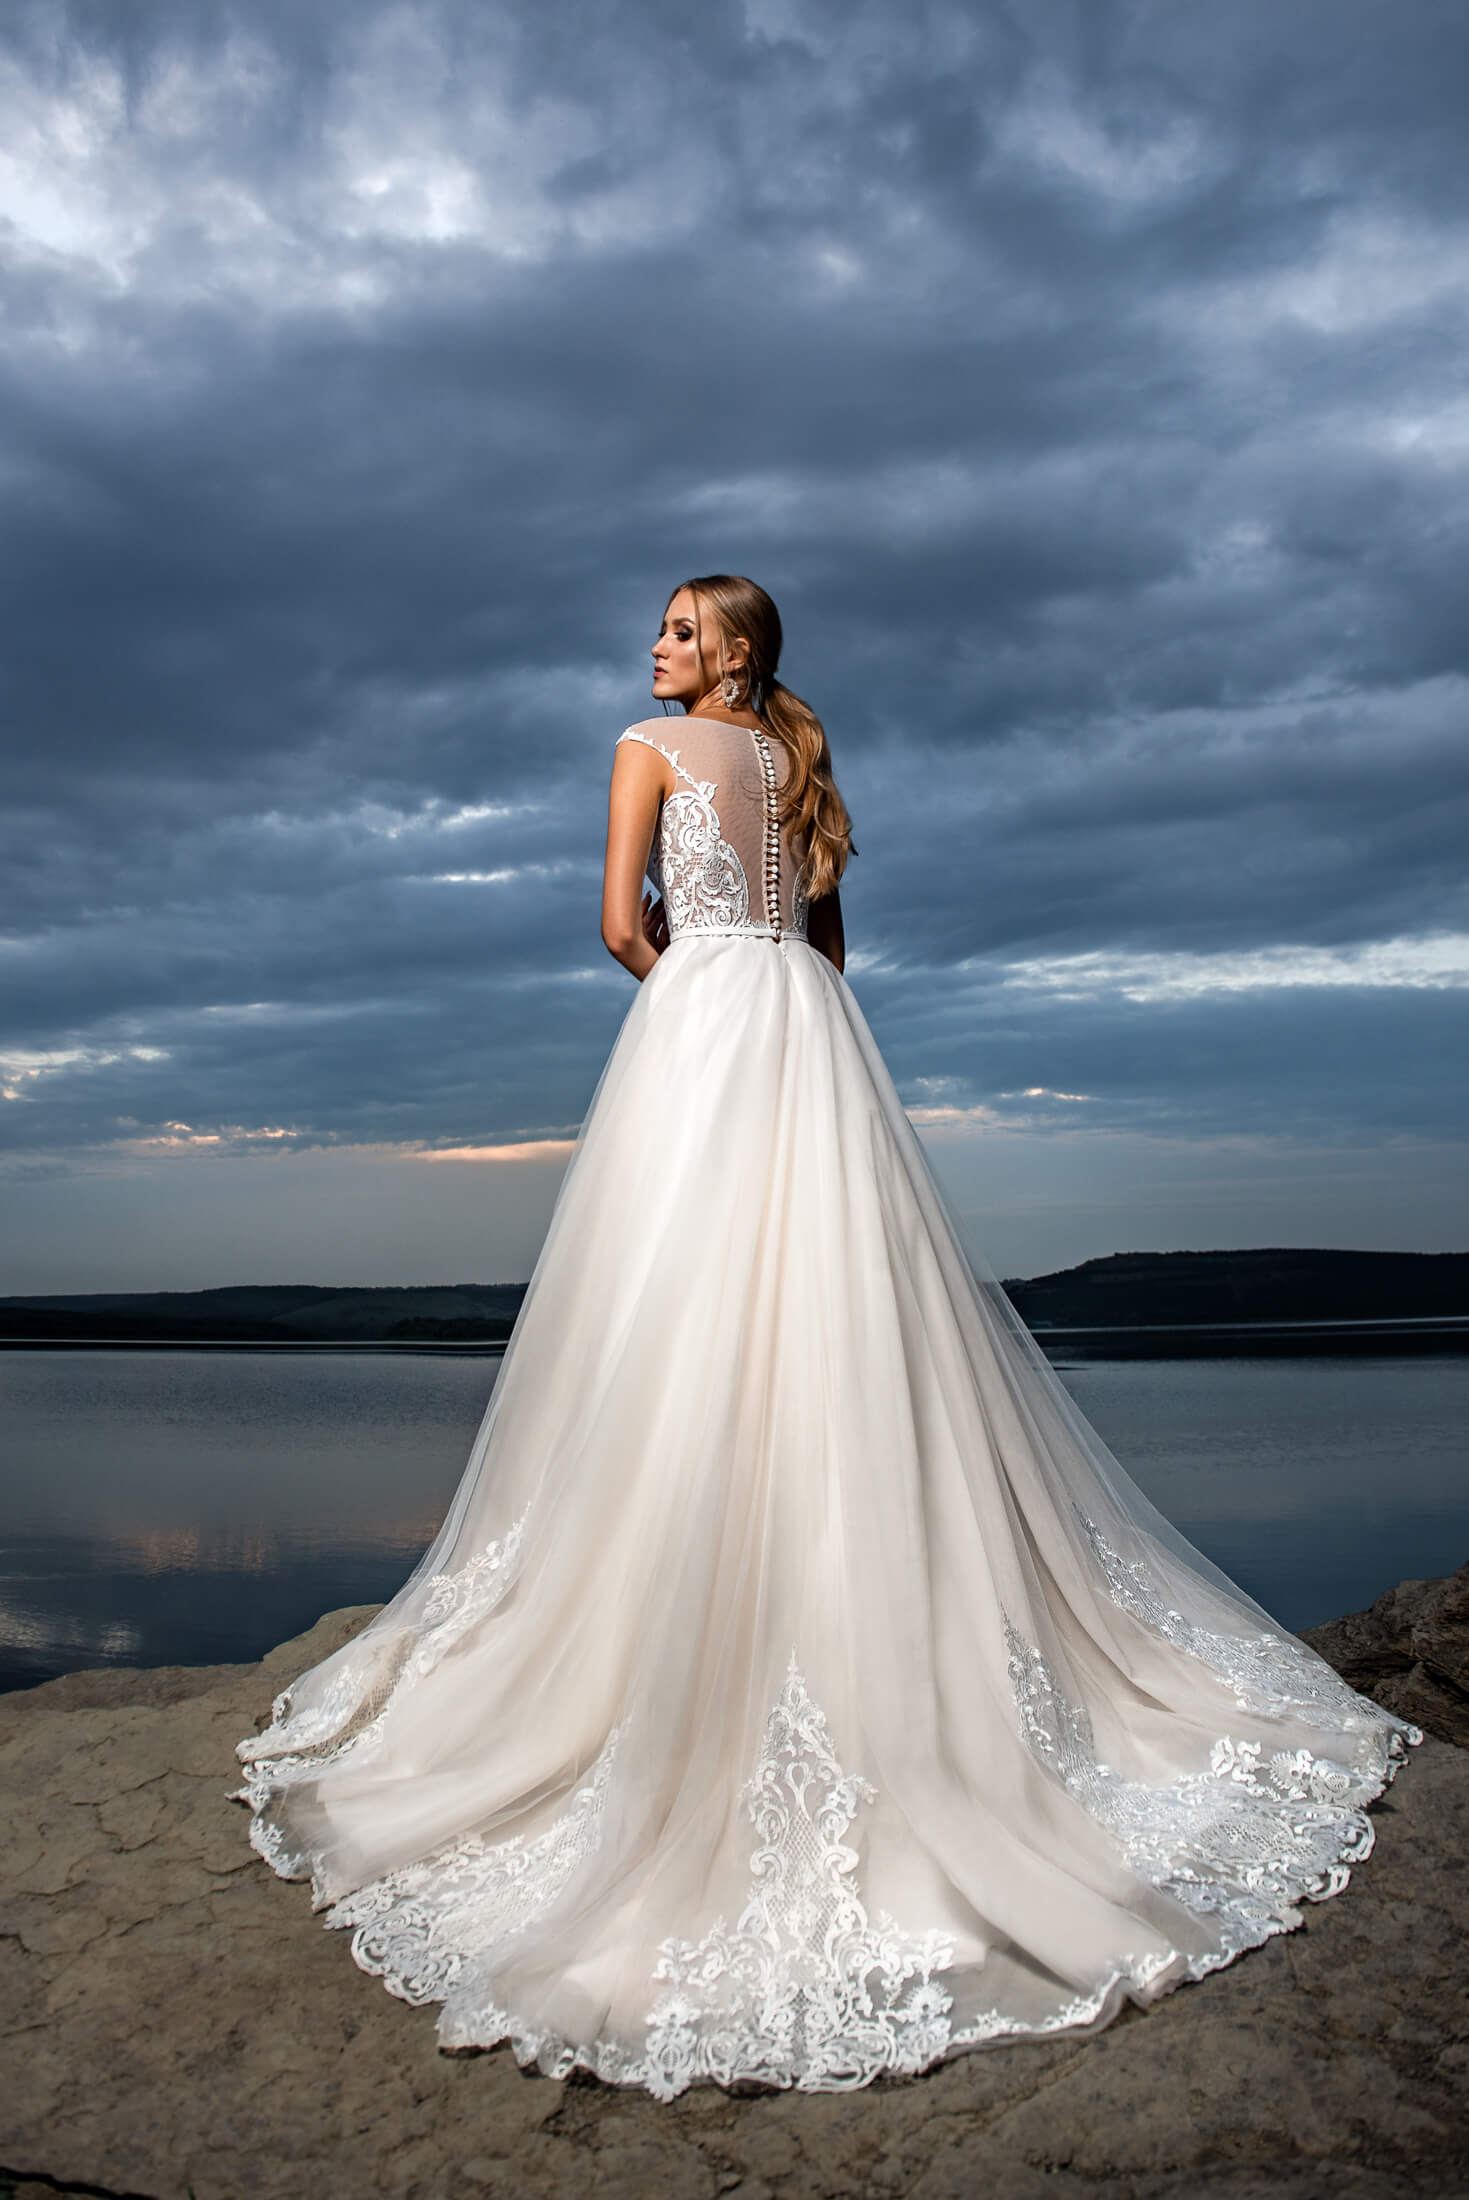 https://kayawedding.com/images/stories/virtuemart/product/SIG_2572 - 5 - 51.jpg